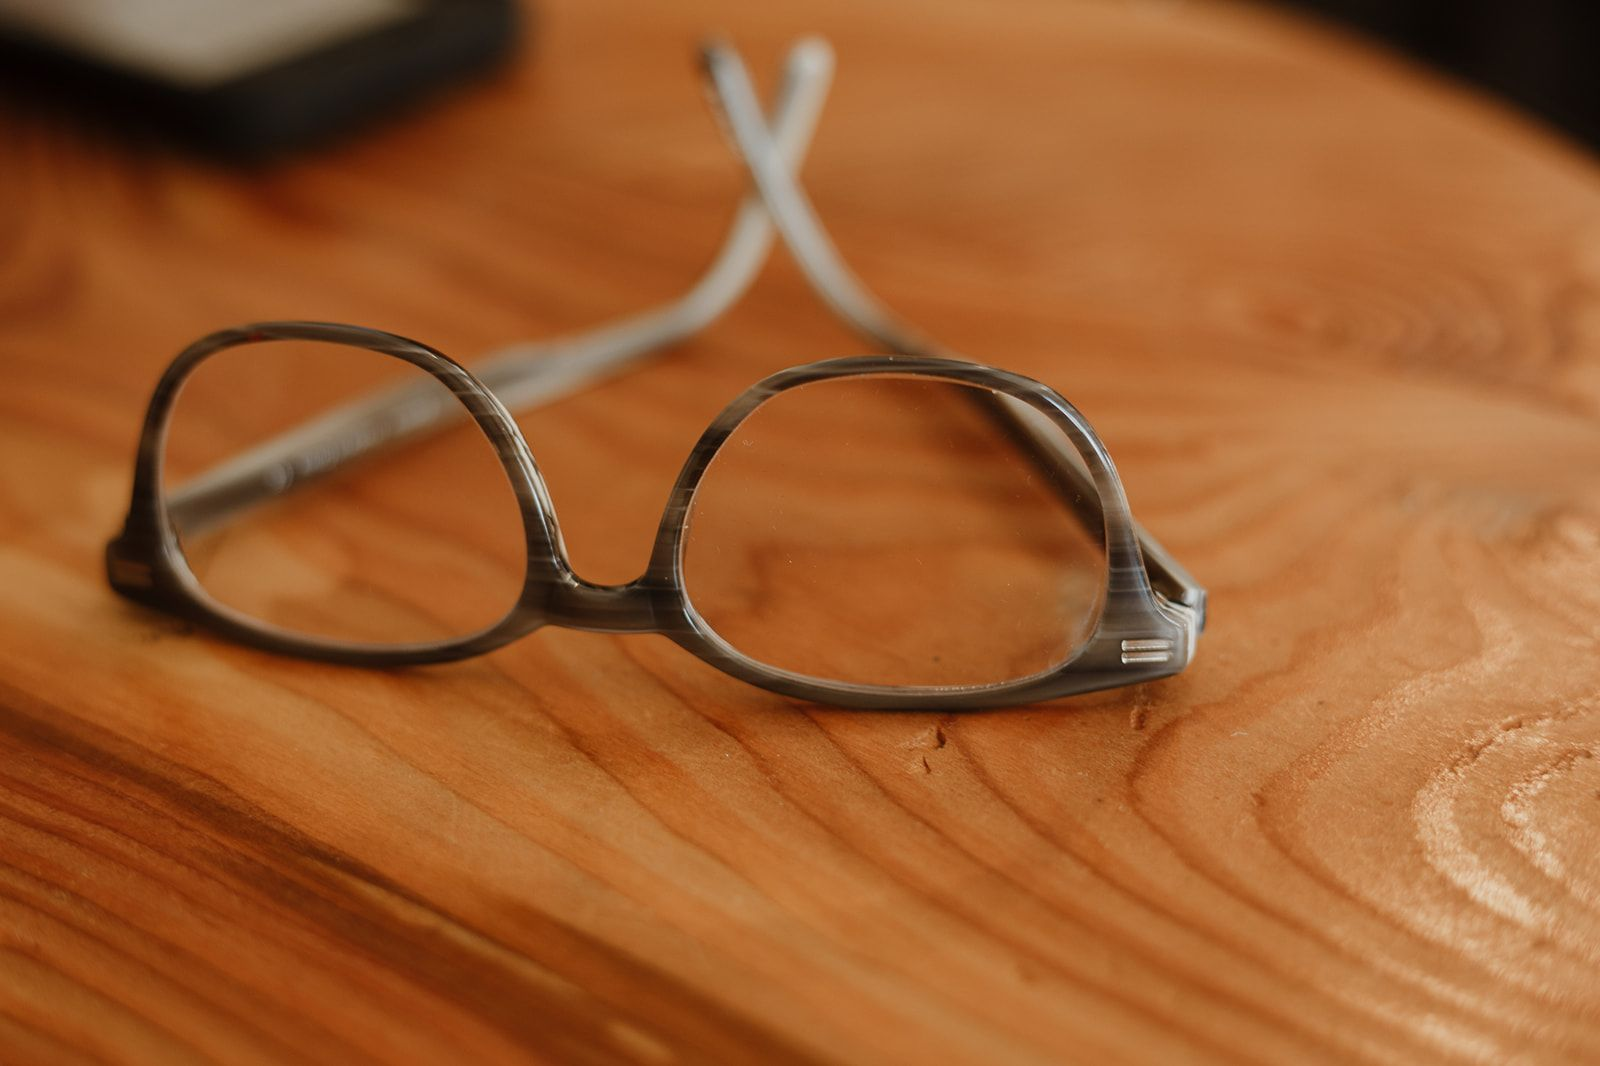 5 Tips About Glasses You May Not Know